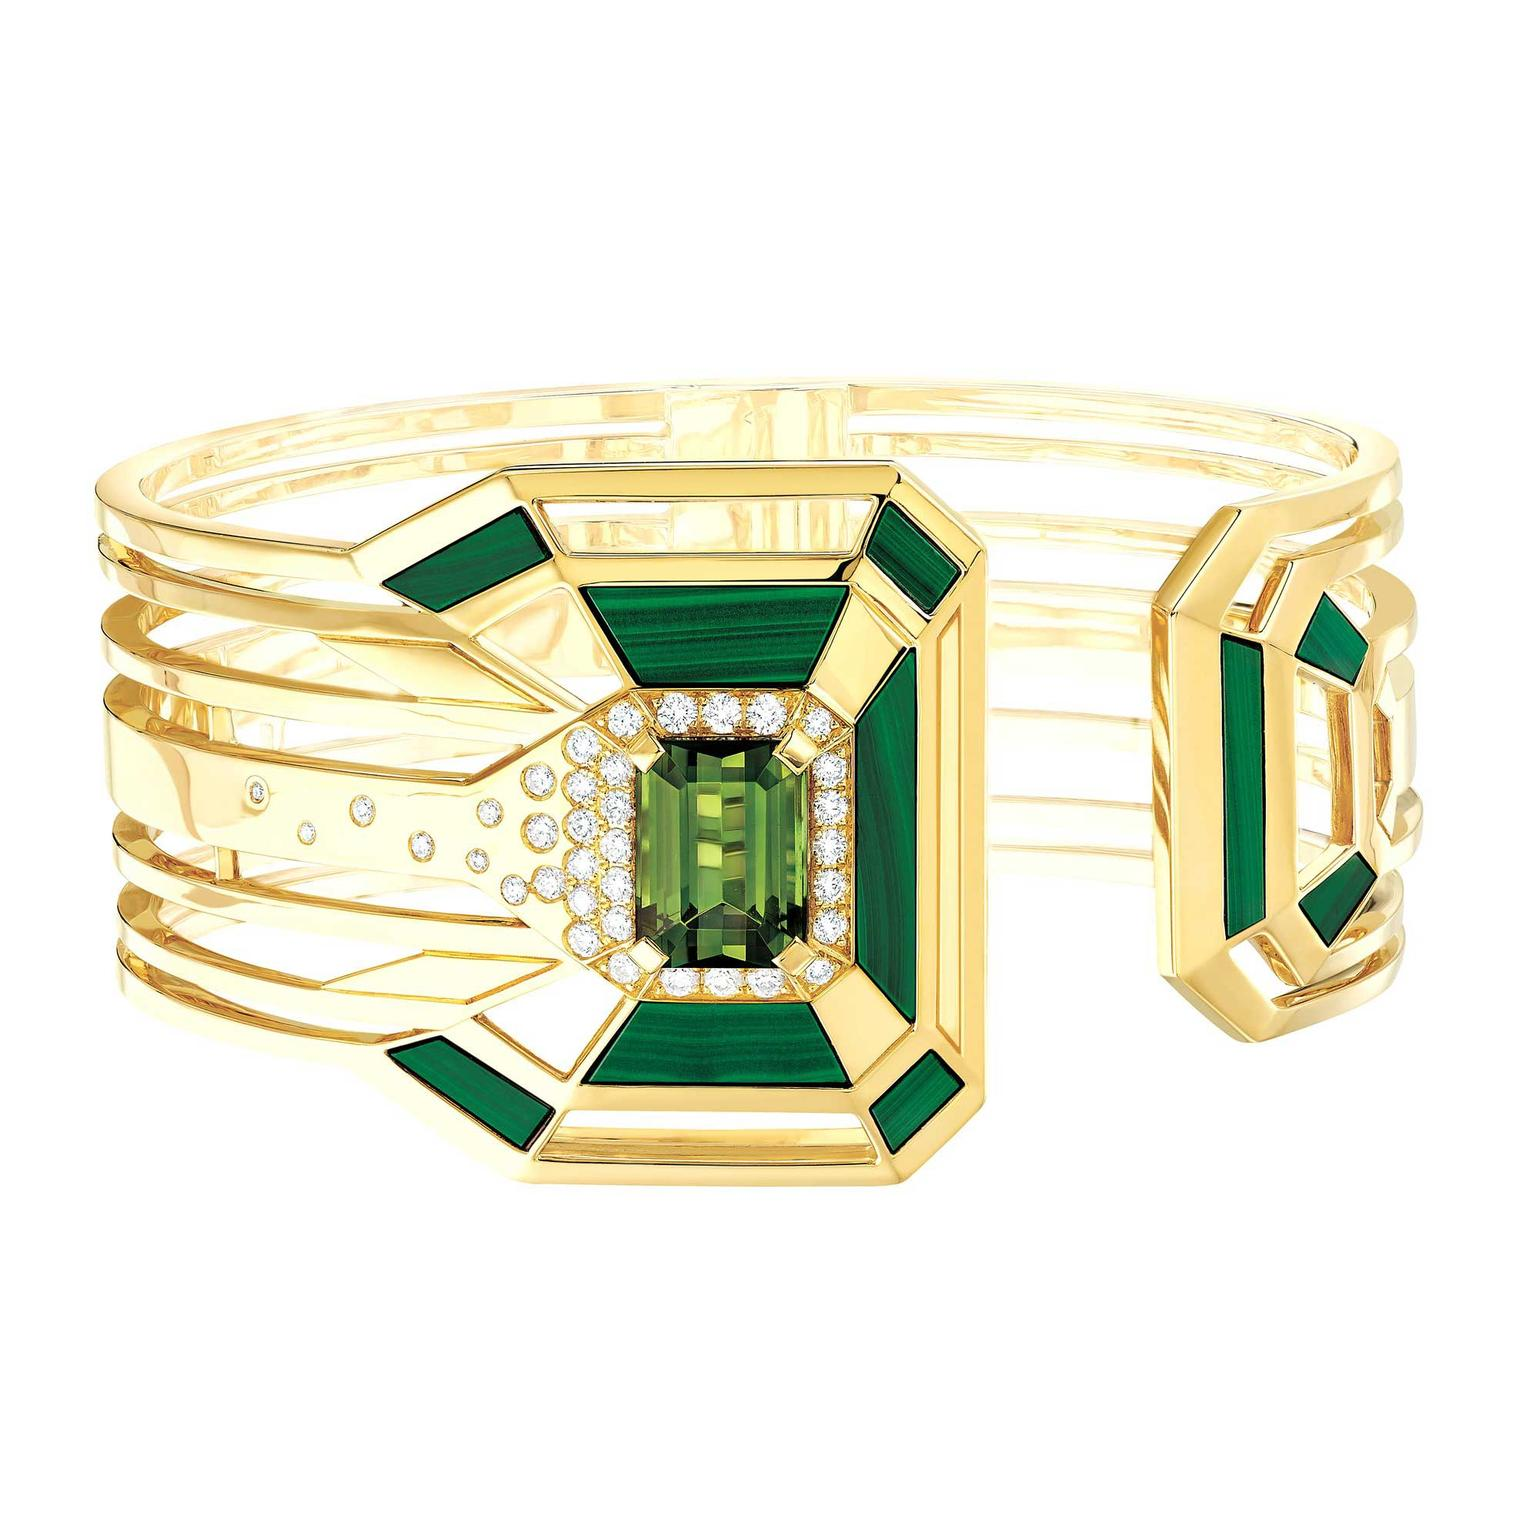 Chanel-bRACELET-MY-GREEN